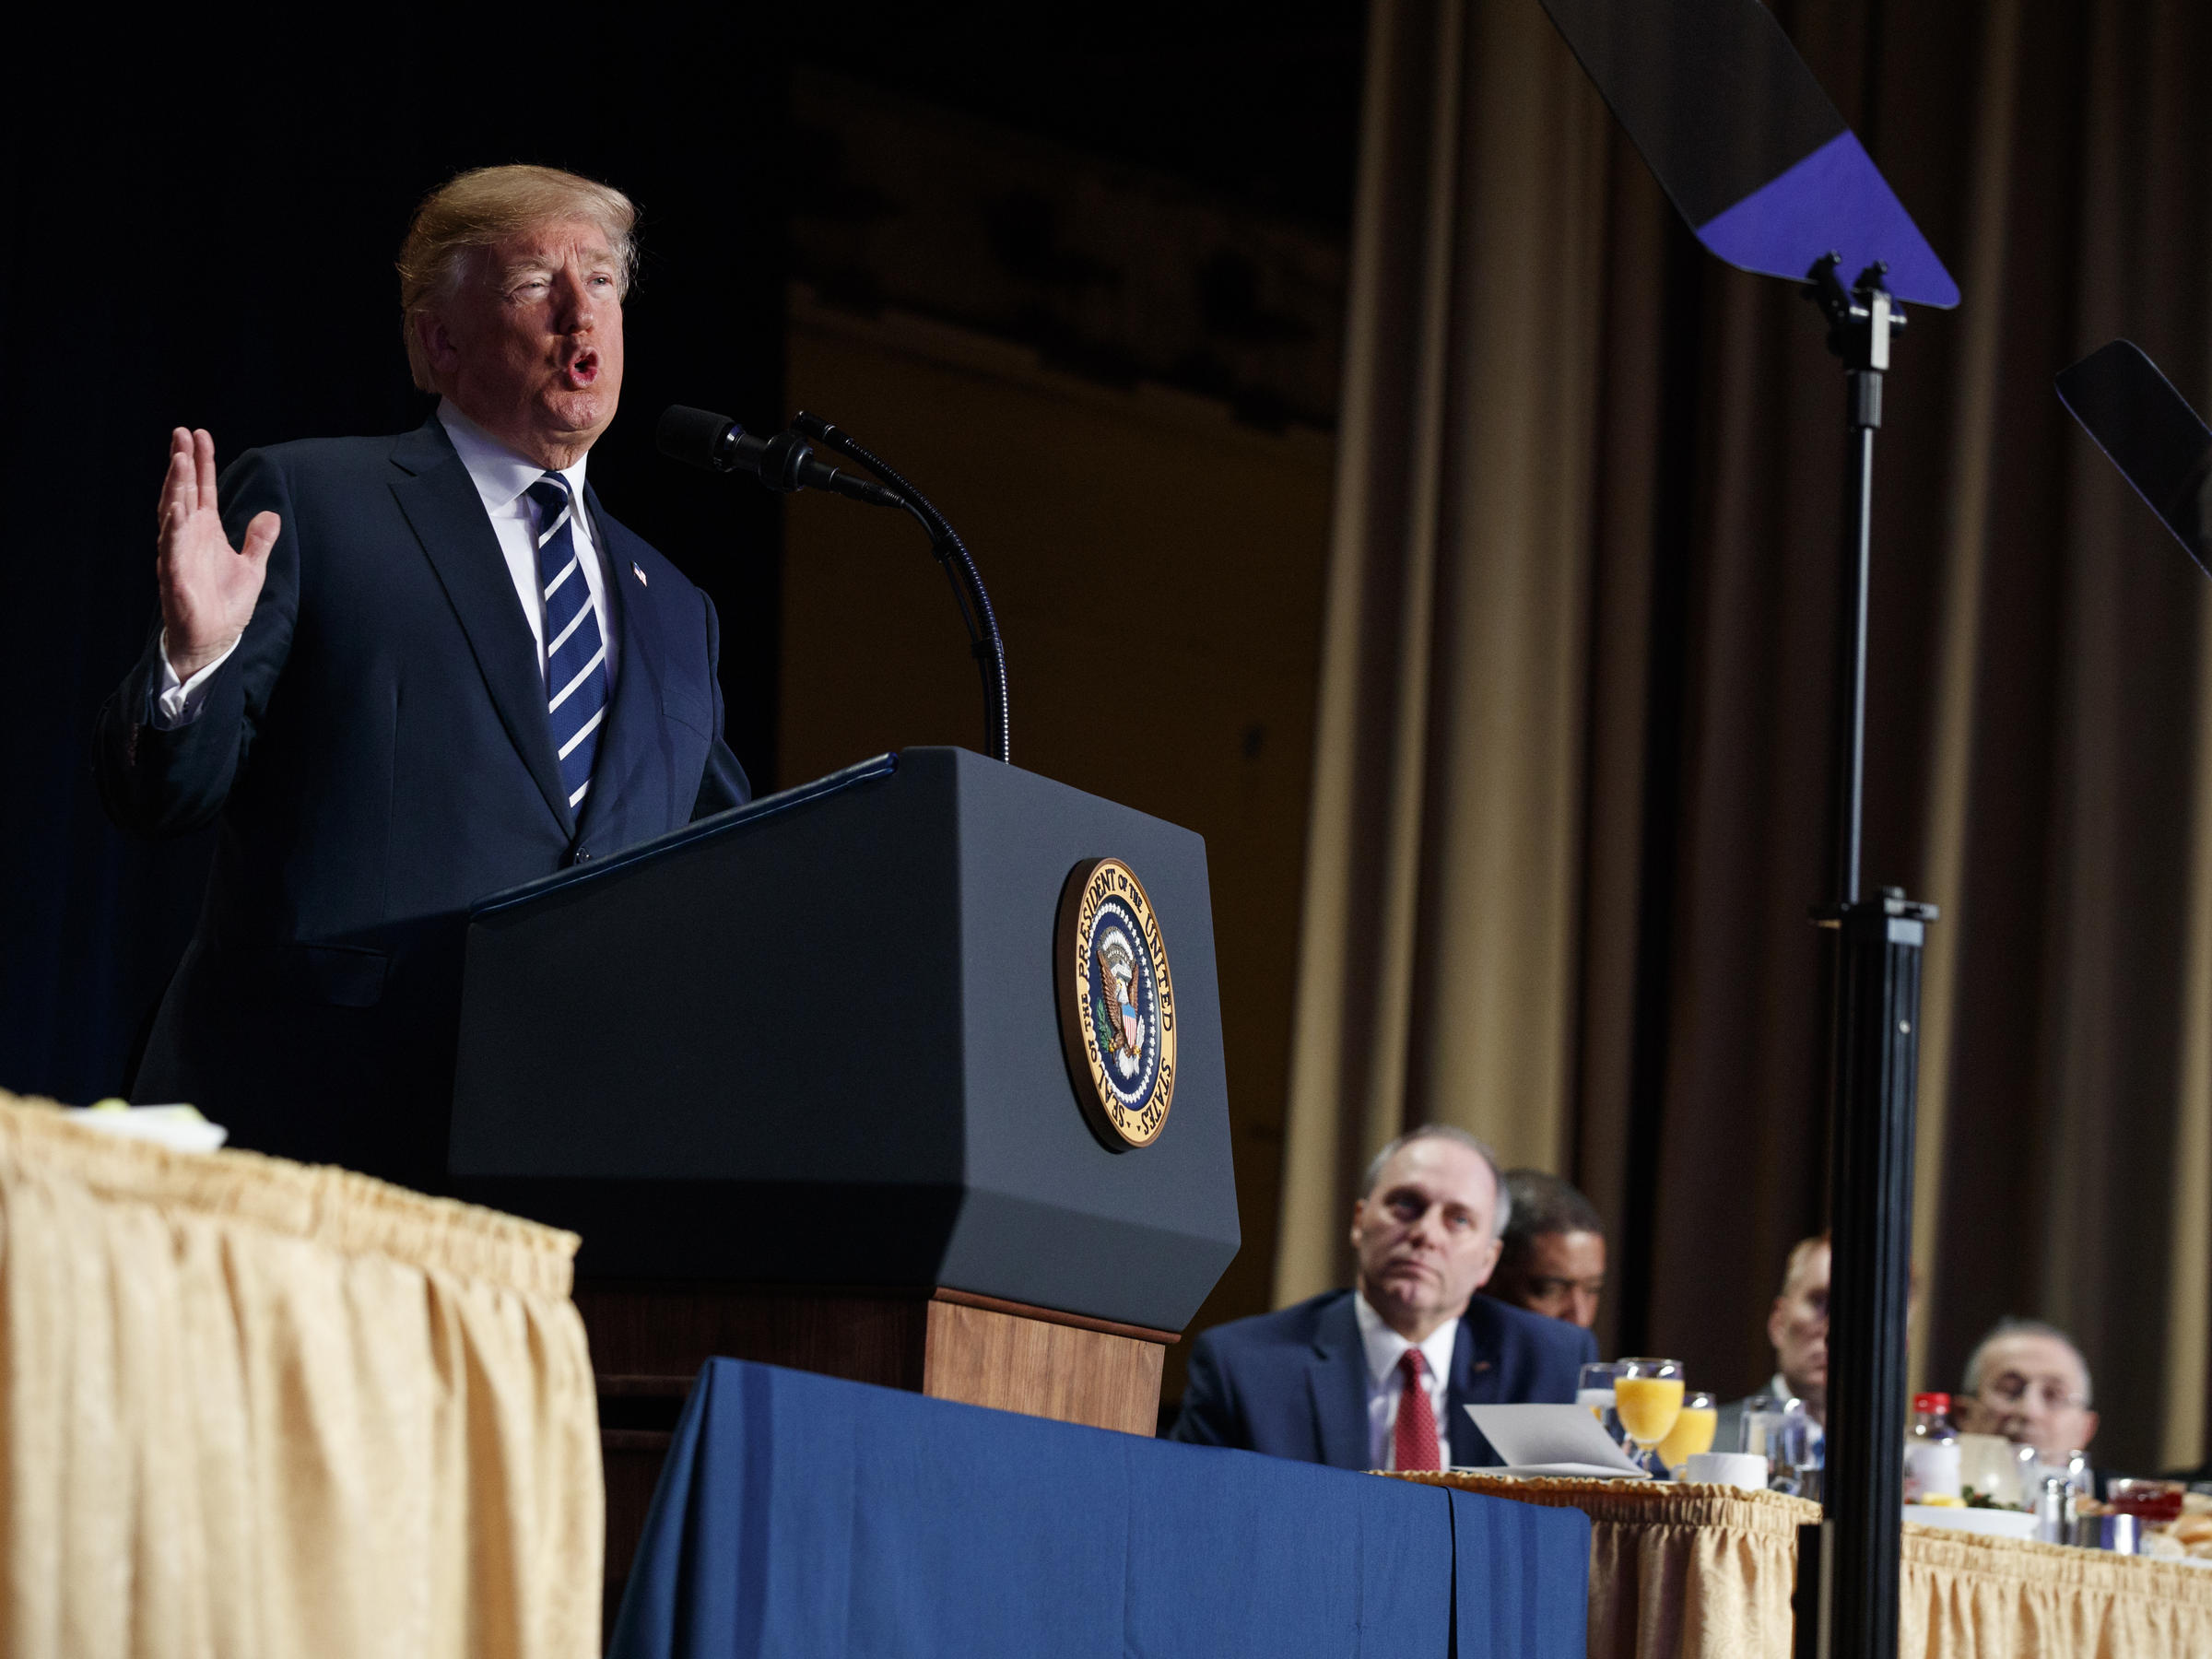 Trump cites 'power of prayer' at 66th National Prayer Breakfast